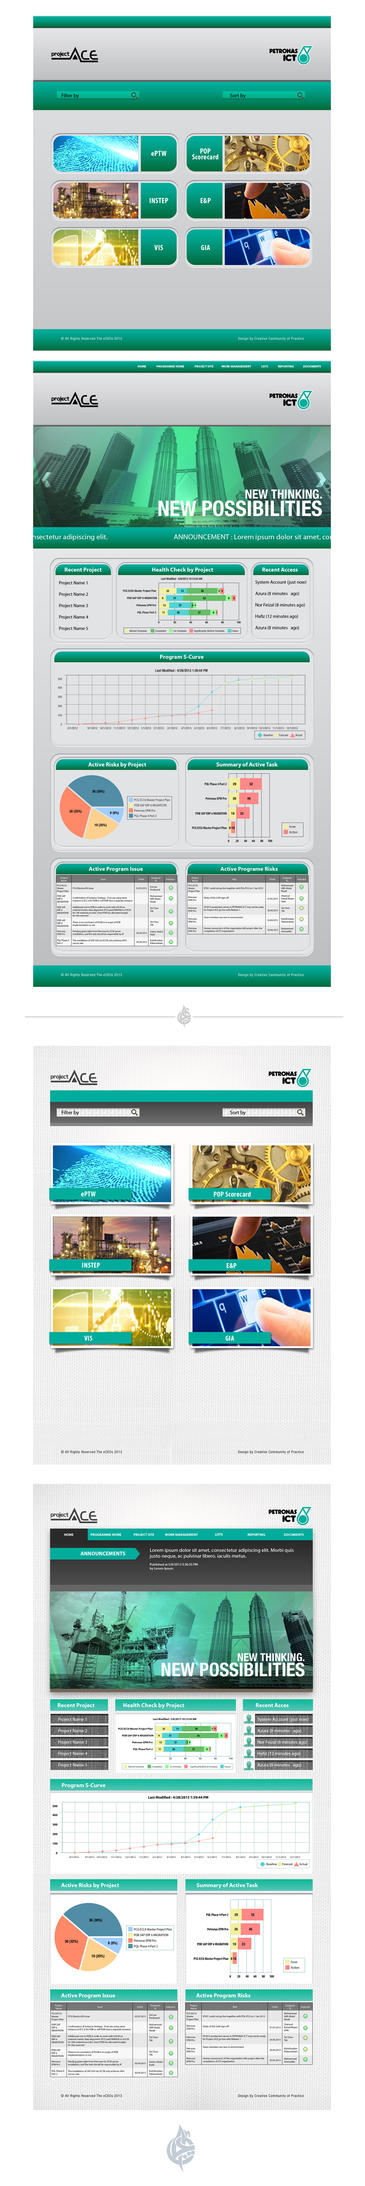 Project Web Design 3 by AimanMD